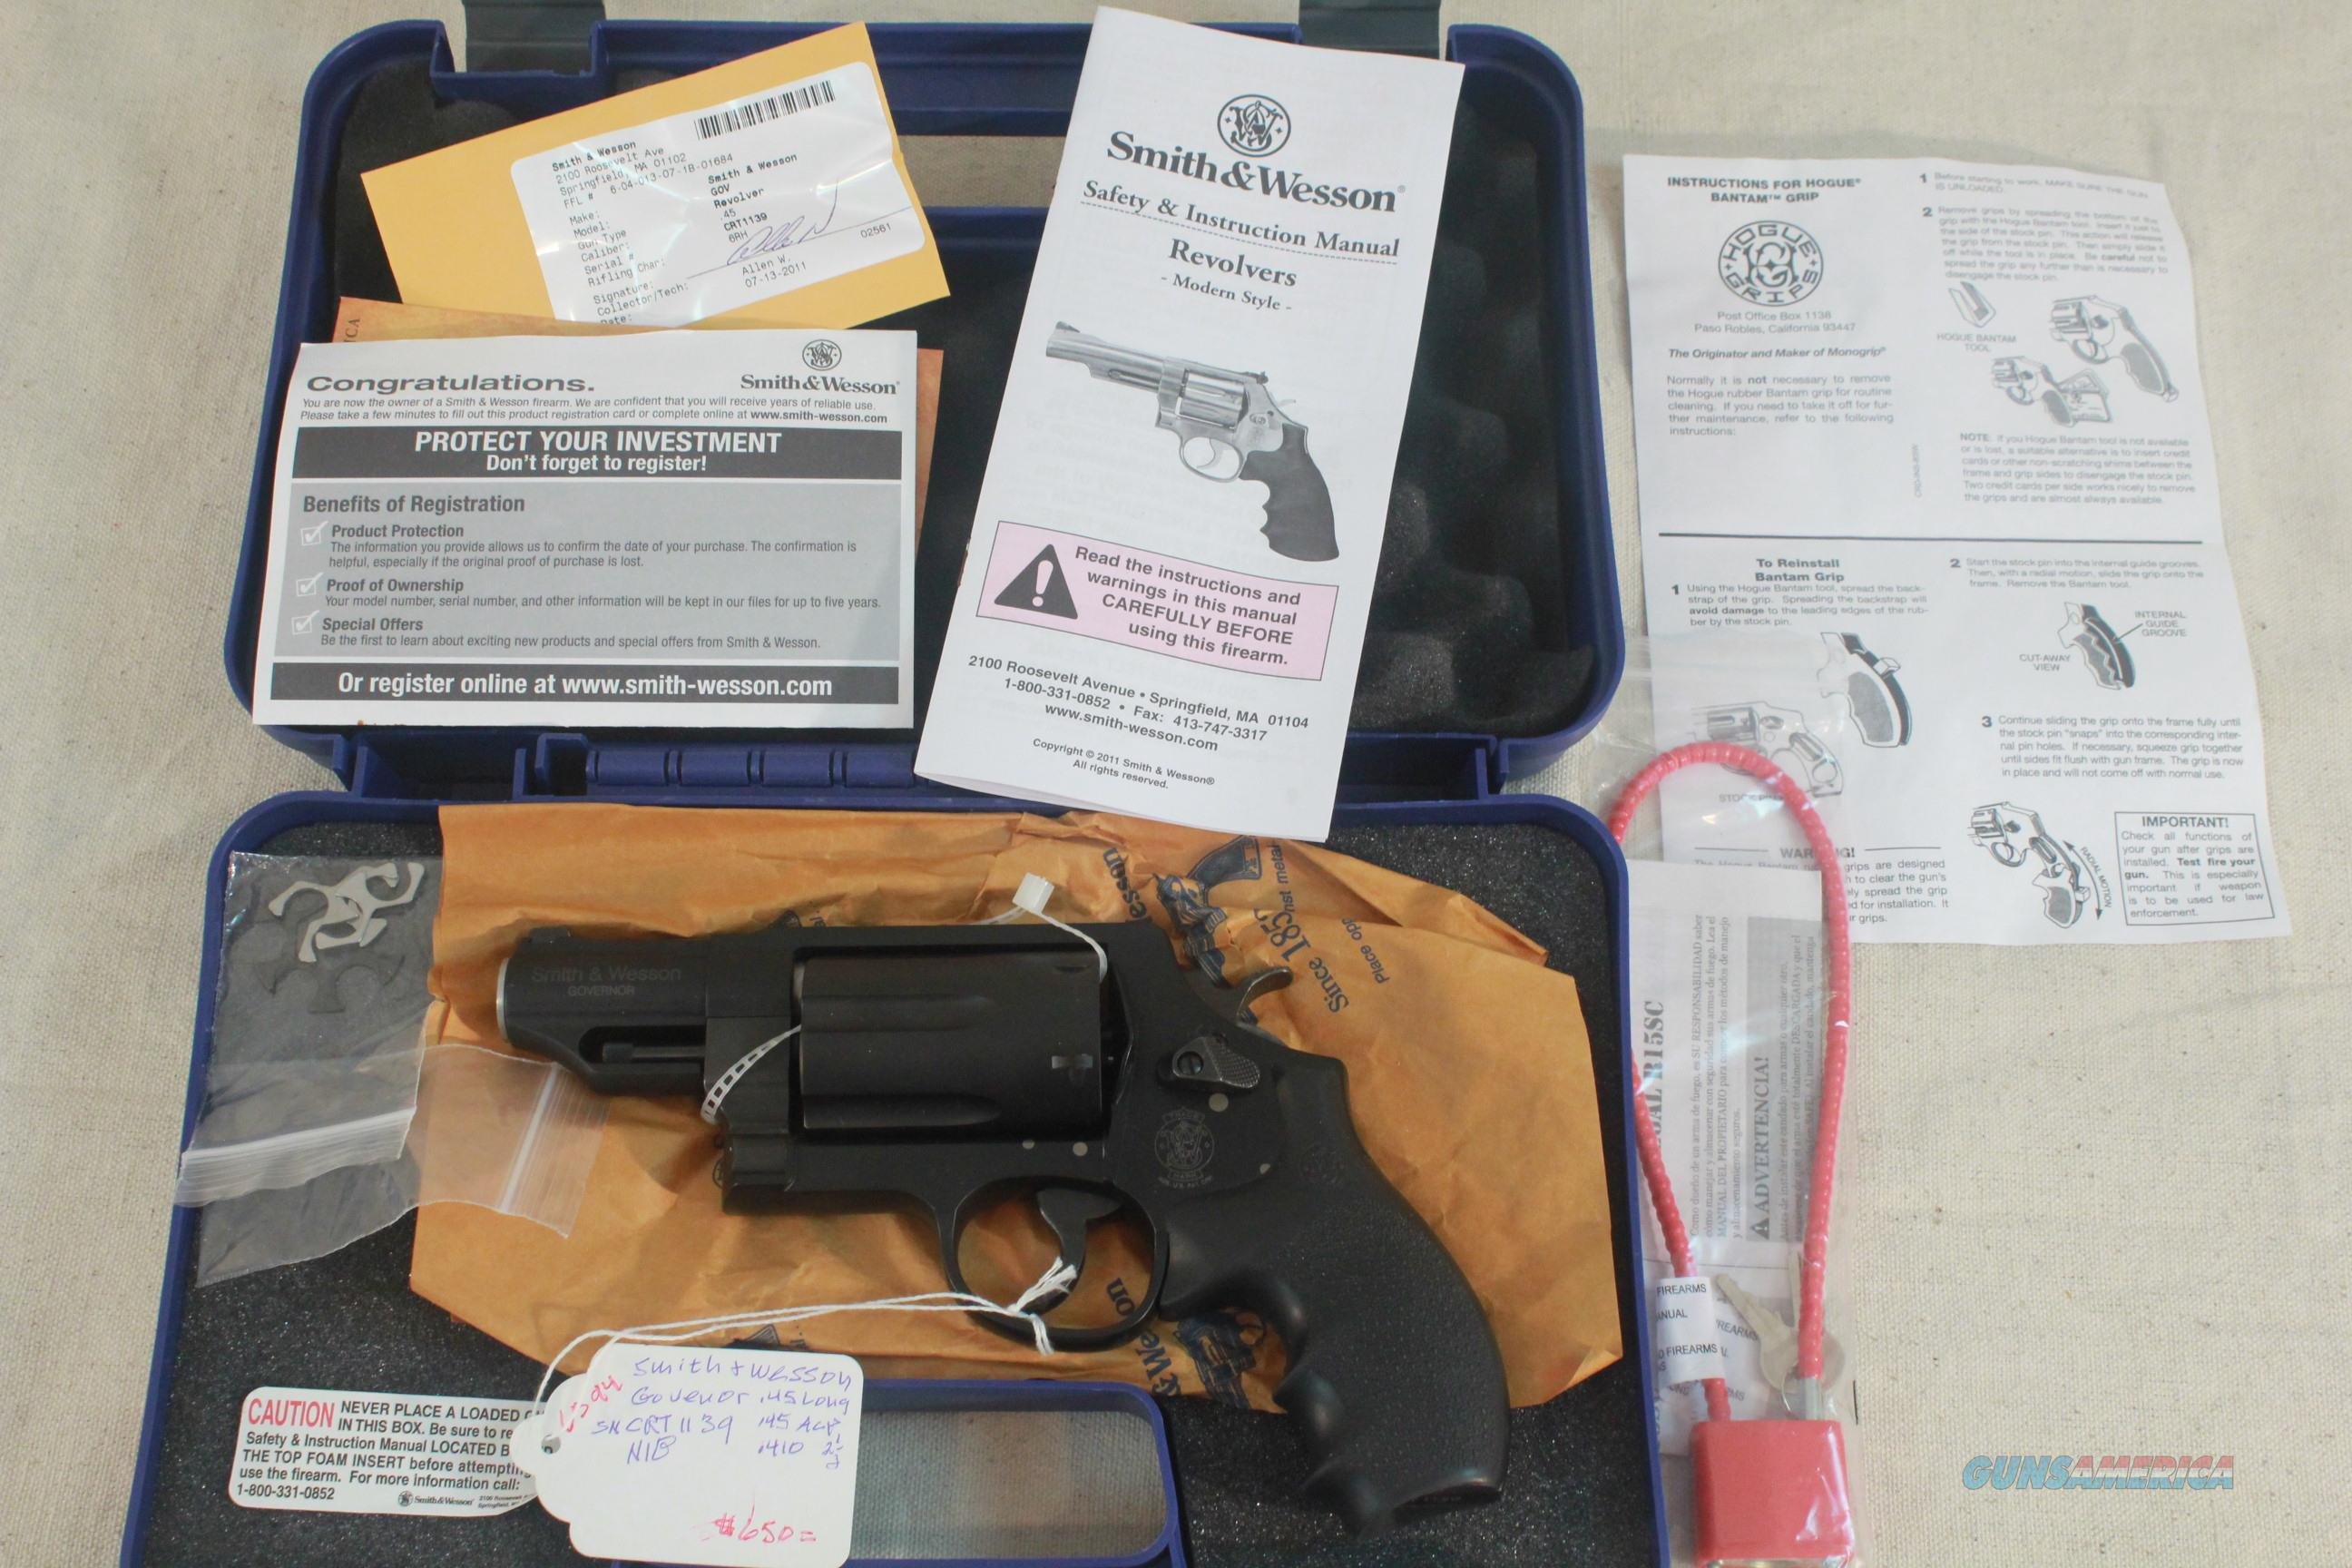 Smith & Wesson Govenor Model, .45 Colt, .45acp, .410 shotshells, New in the Box  Guns > Pistols > Smith & Wesson Revolvers > Full Frame Revolver